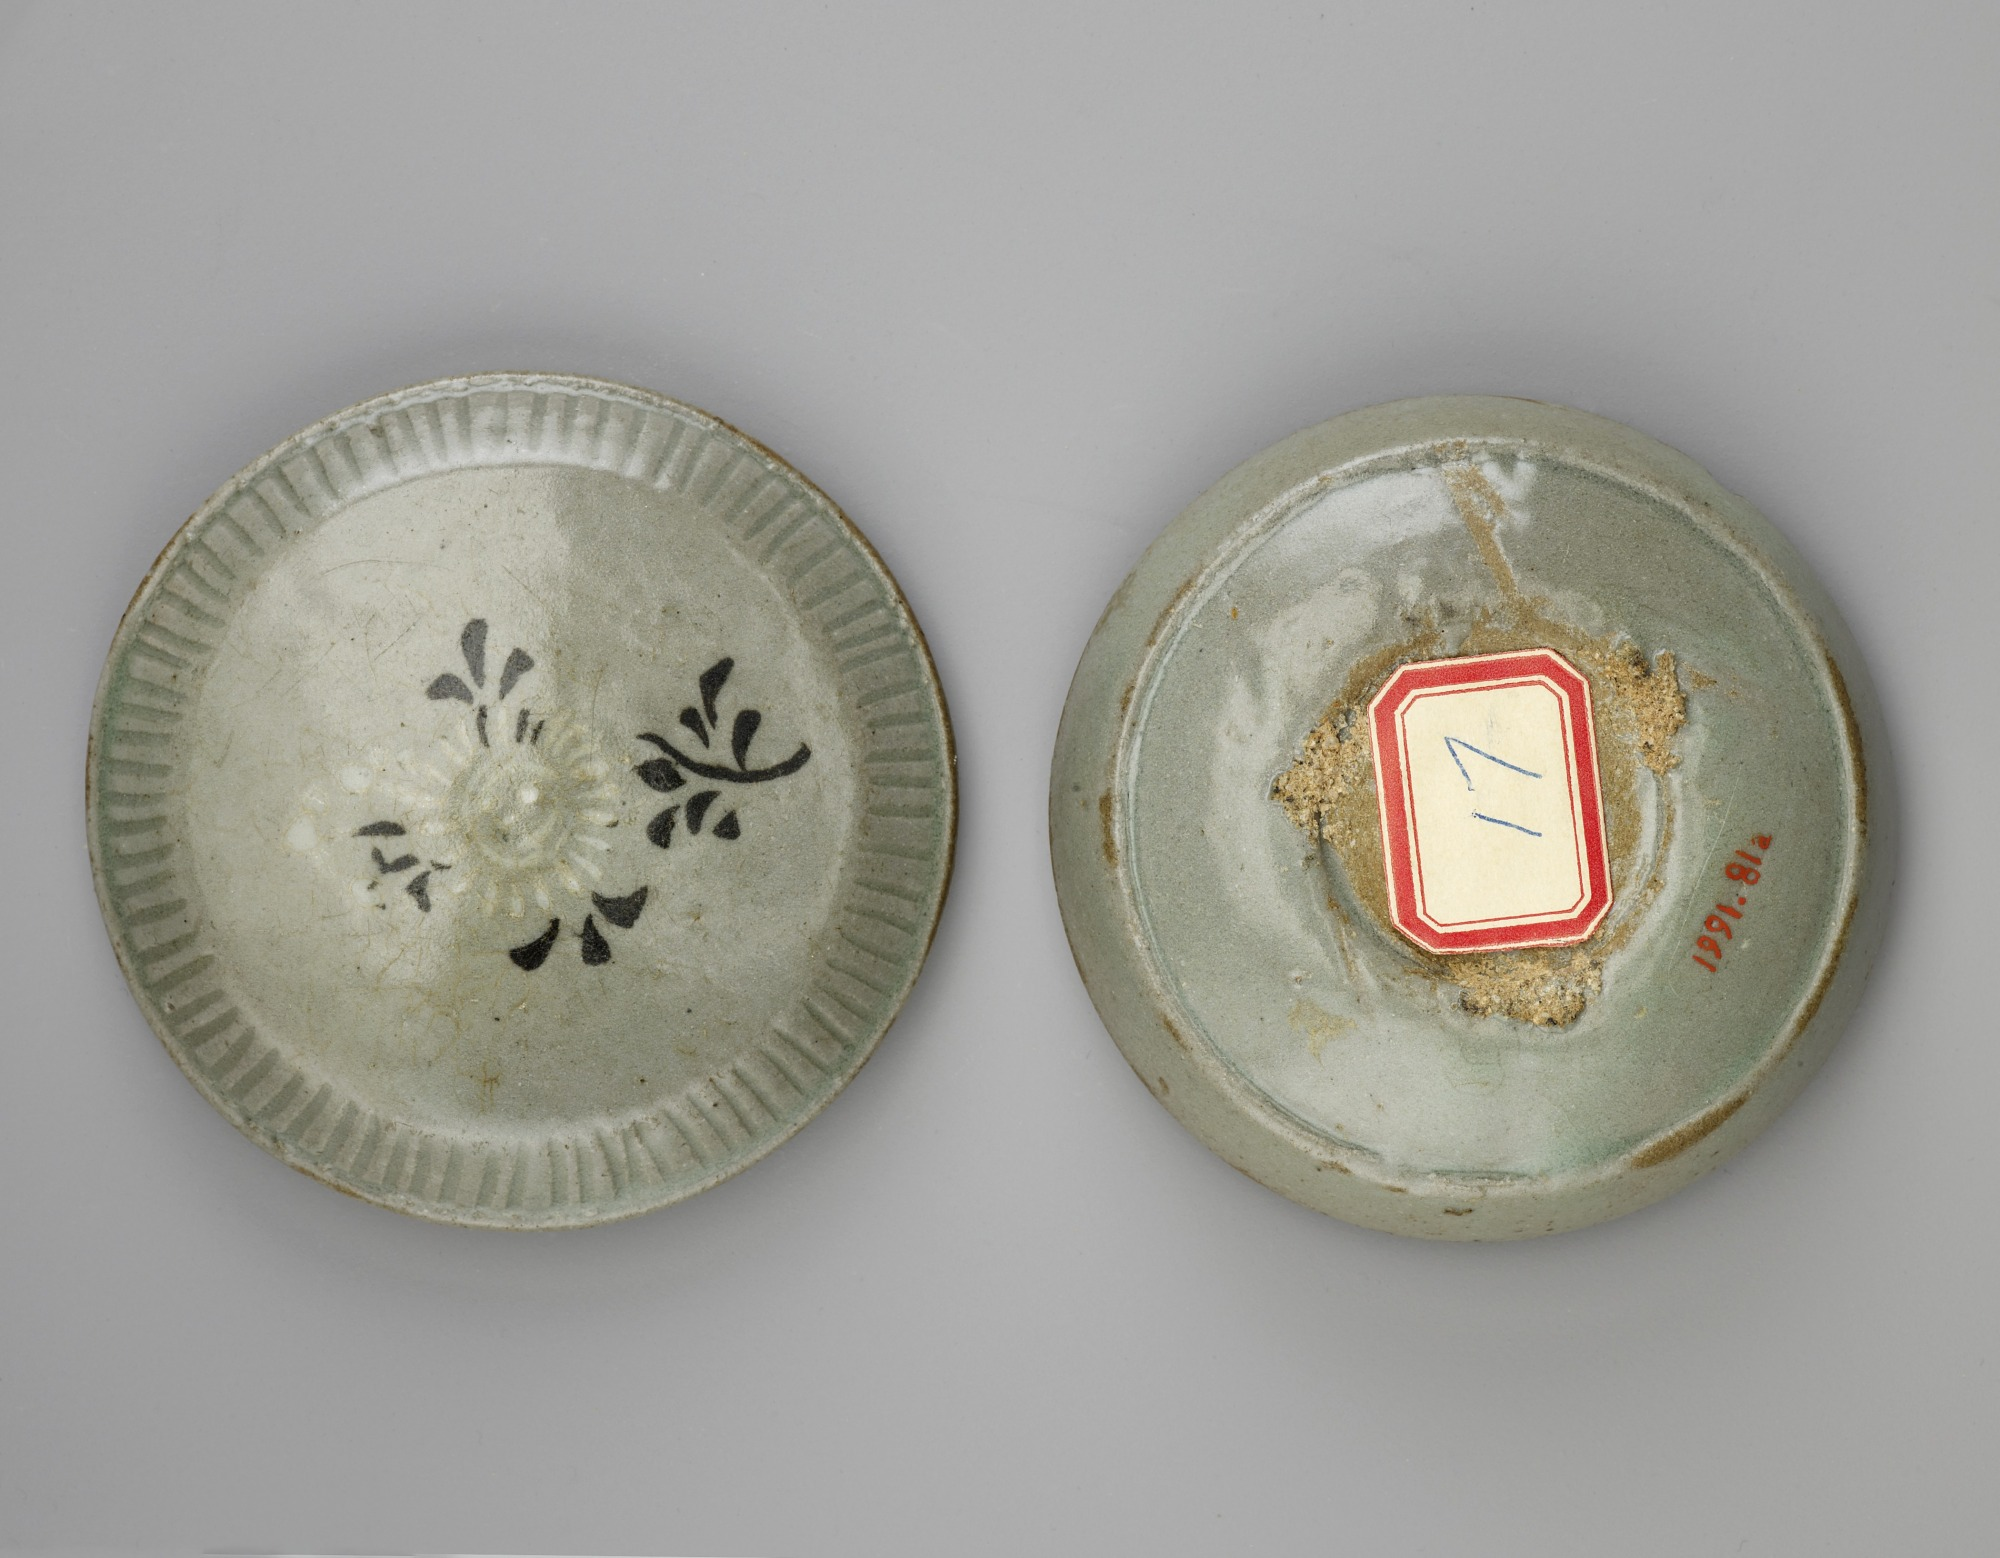 lid and base